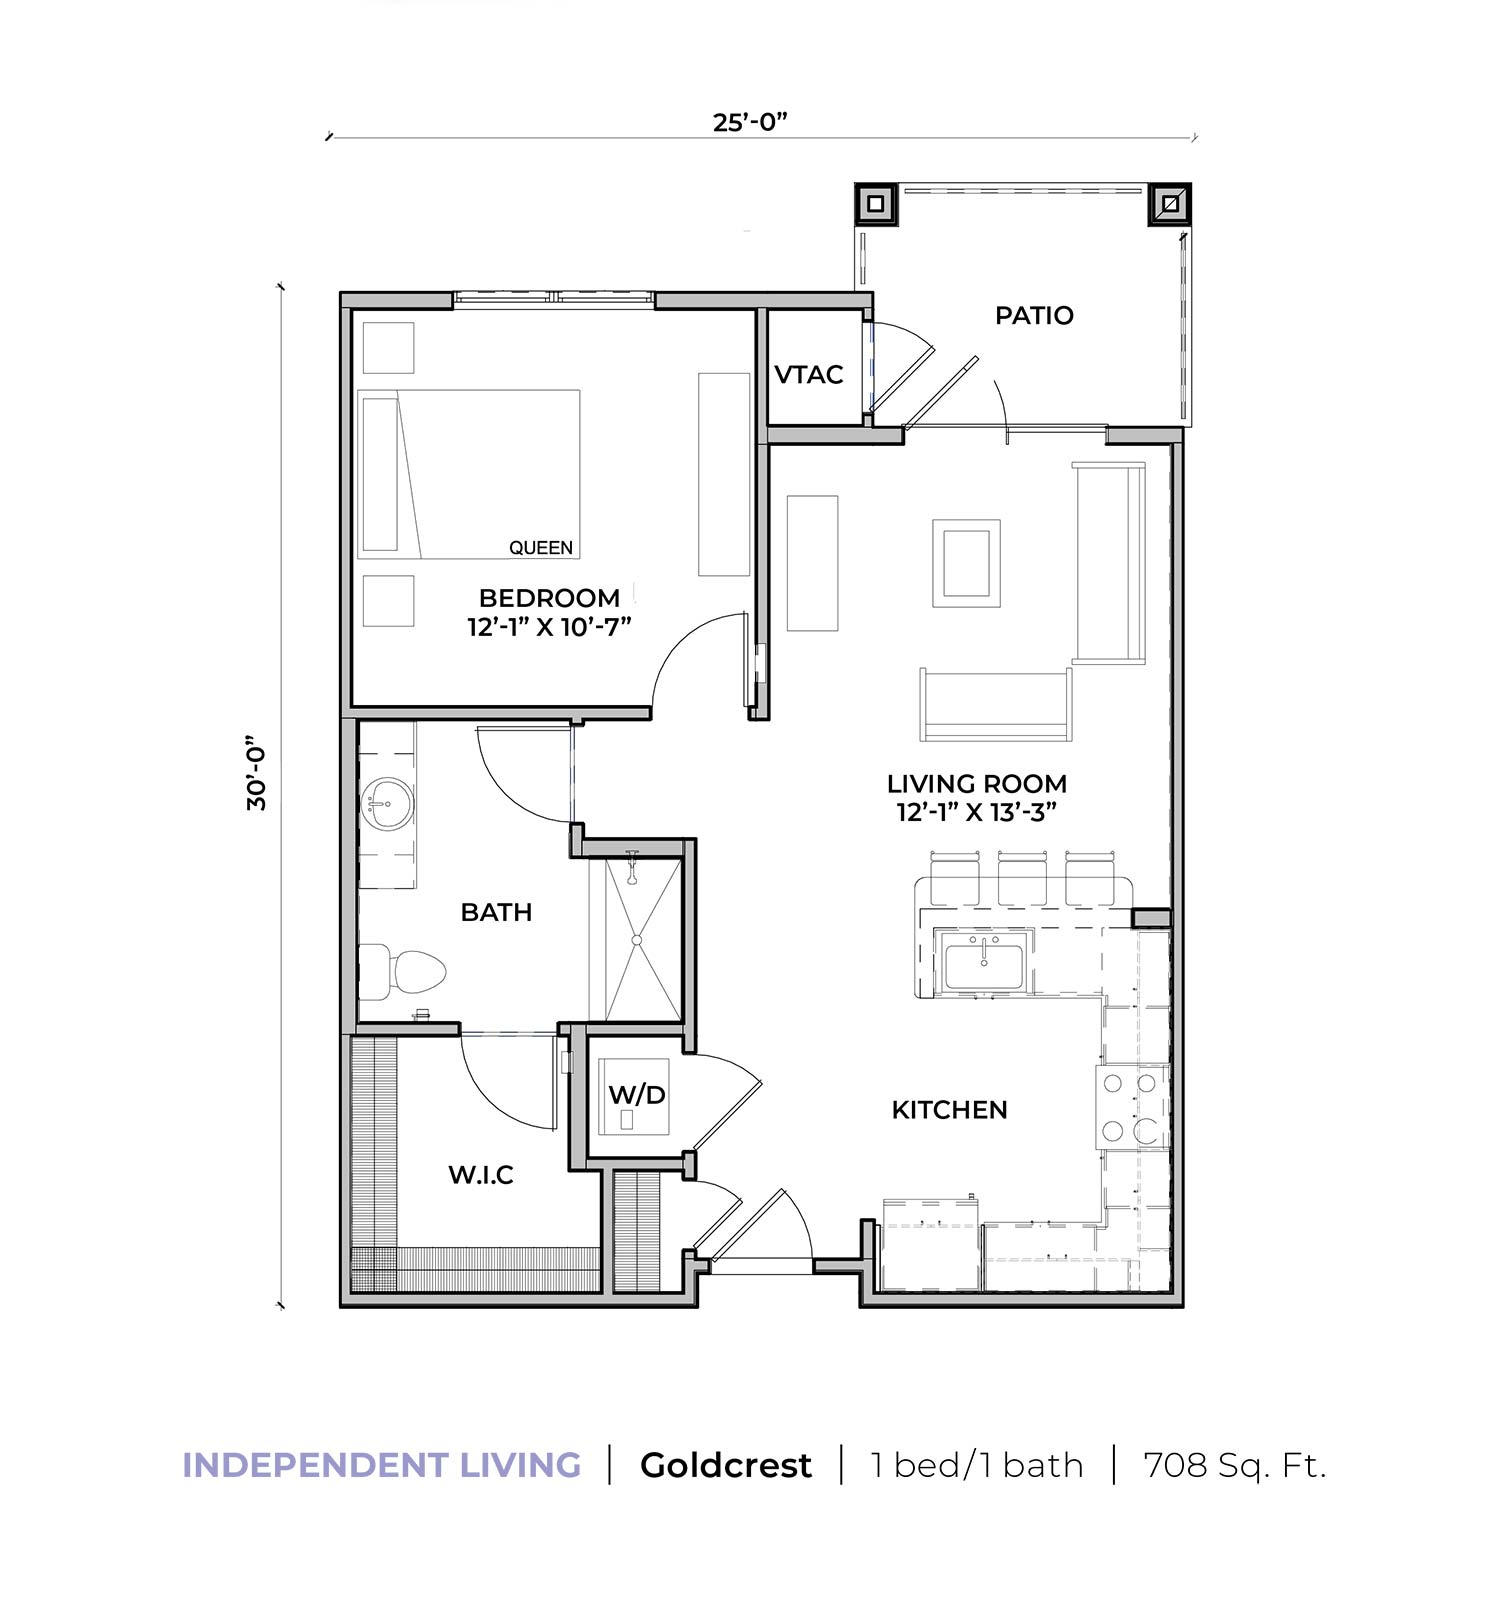 Independent living Goldcrest one-bedroom one-bathroom apartment floor plan